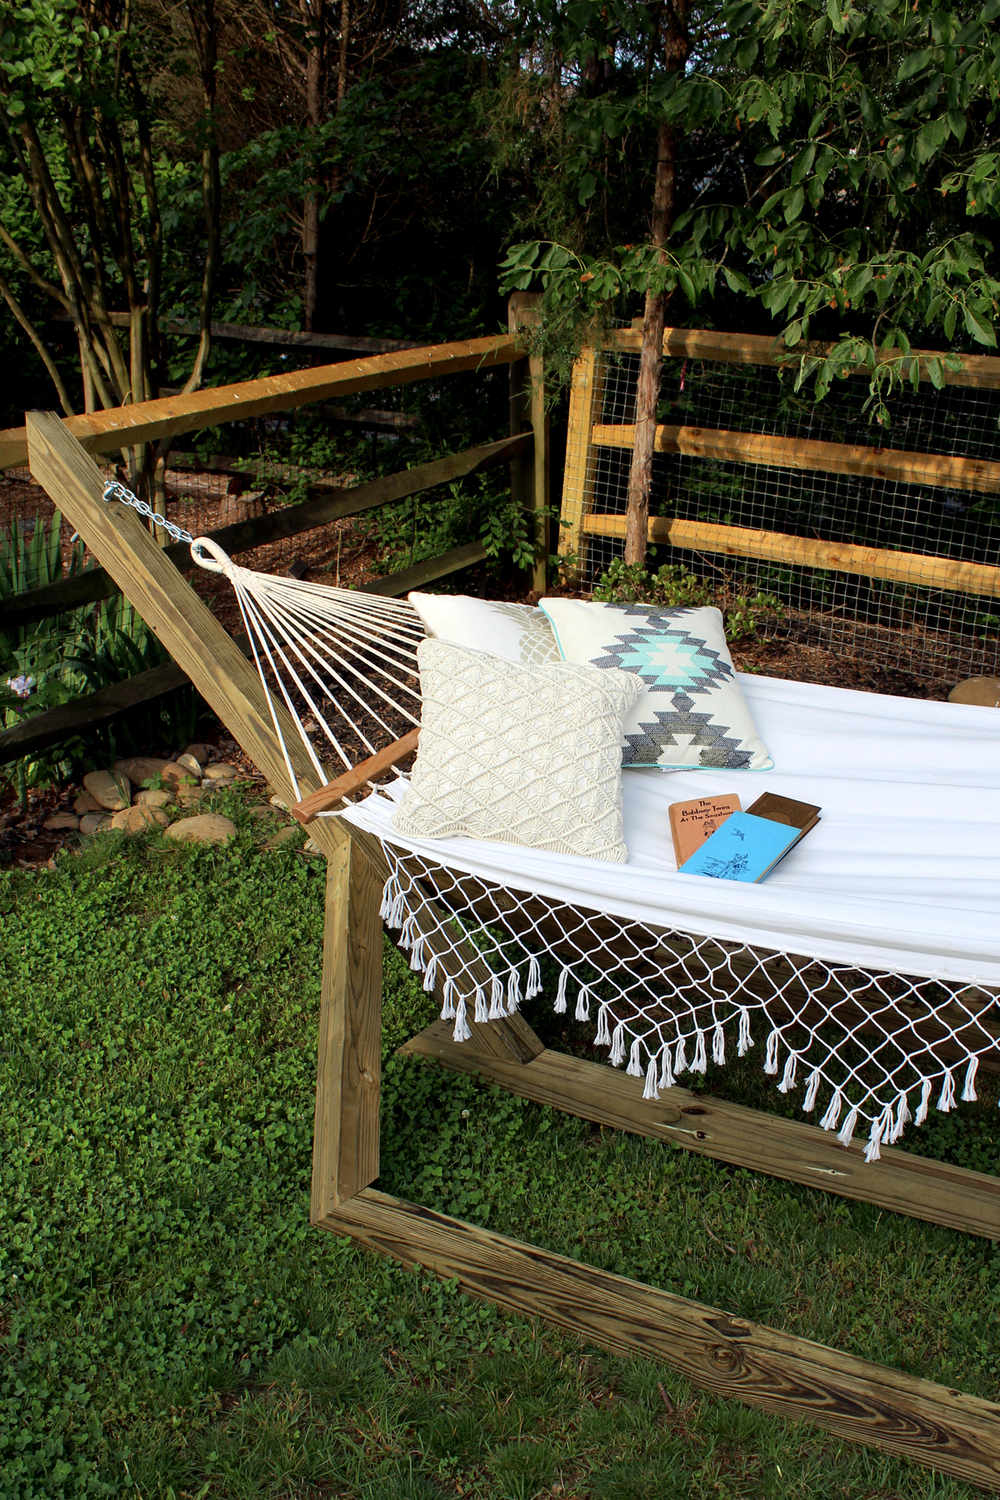 learn how to make this wood hammock stand for $60. fun staycation idea!